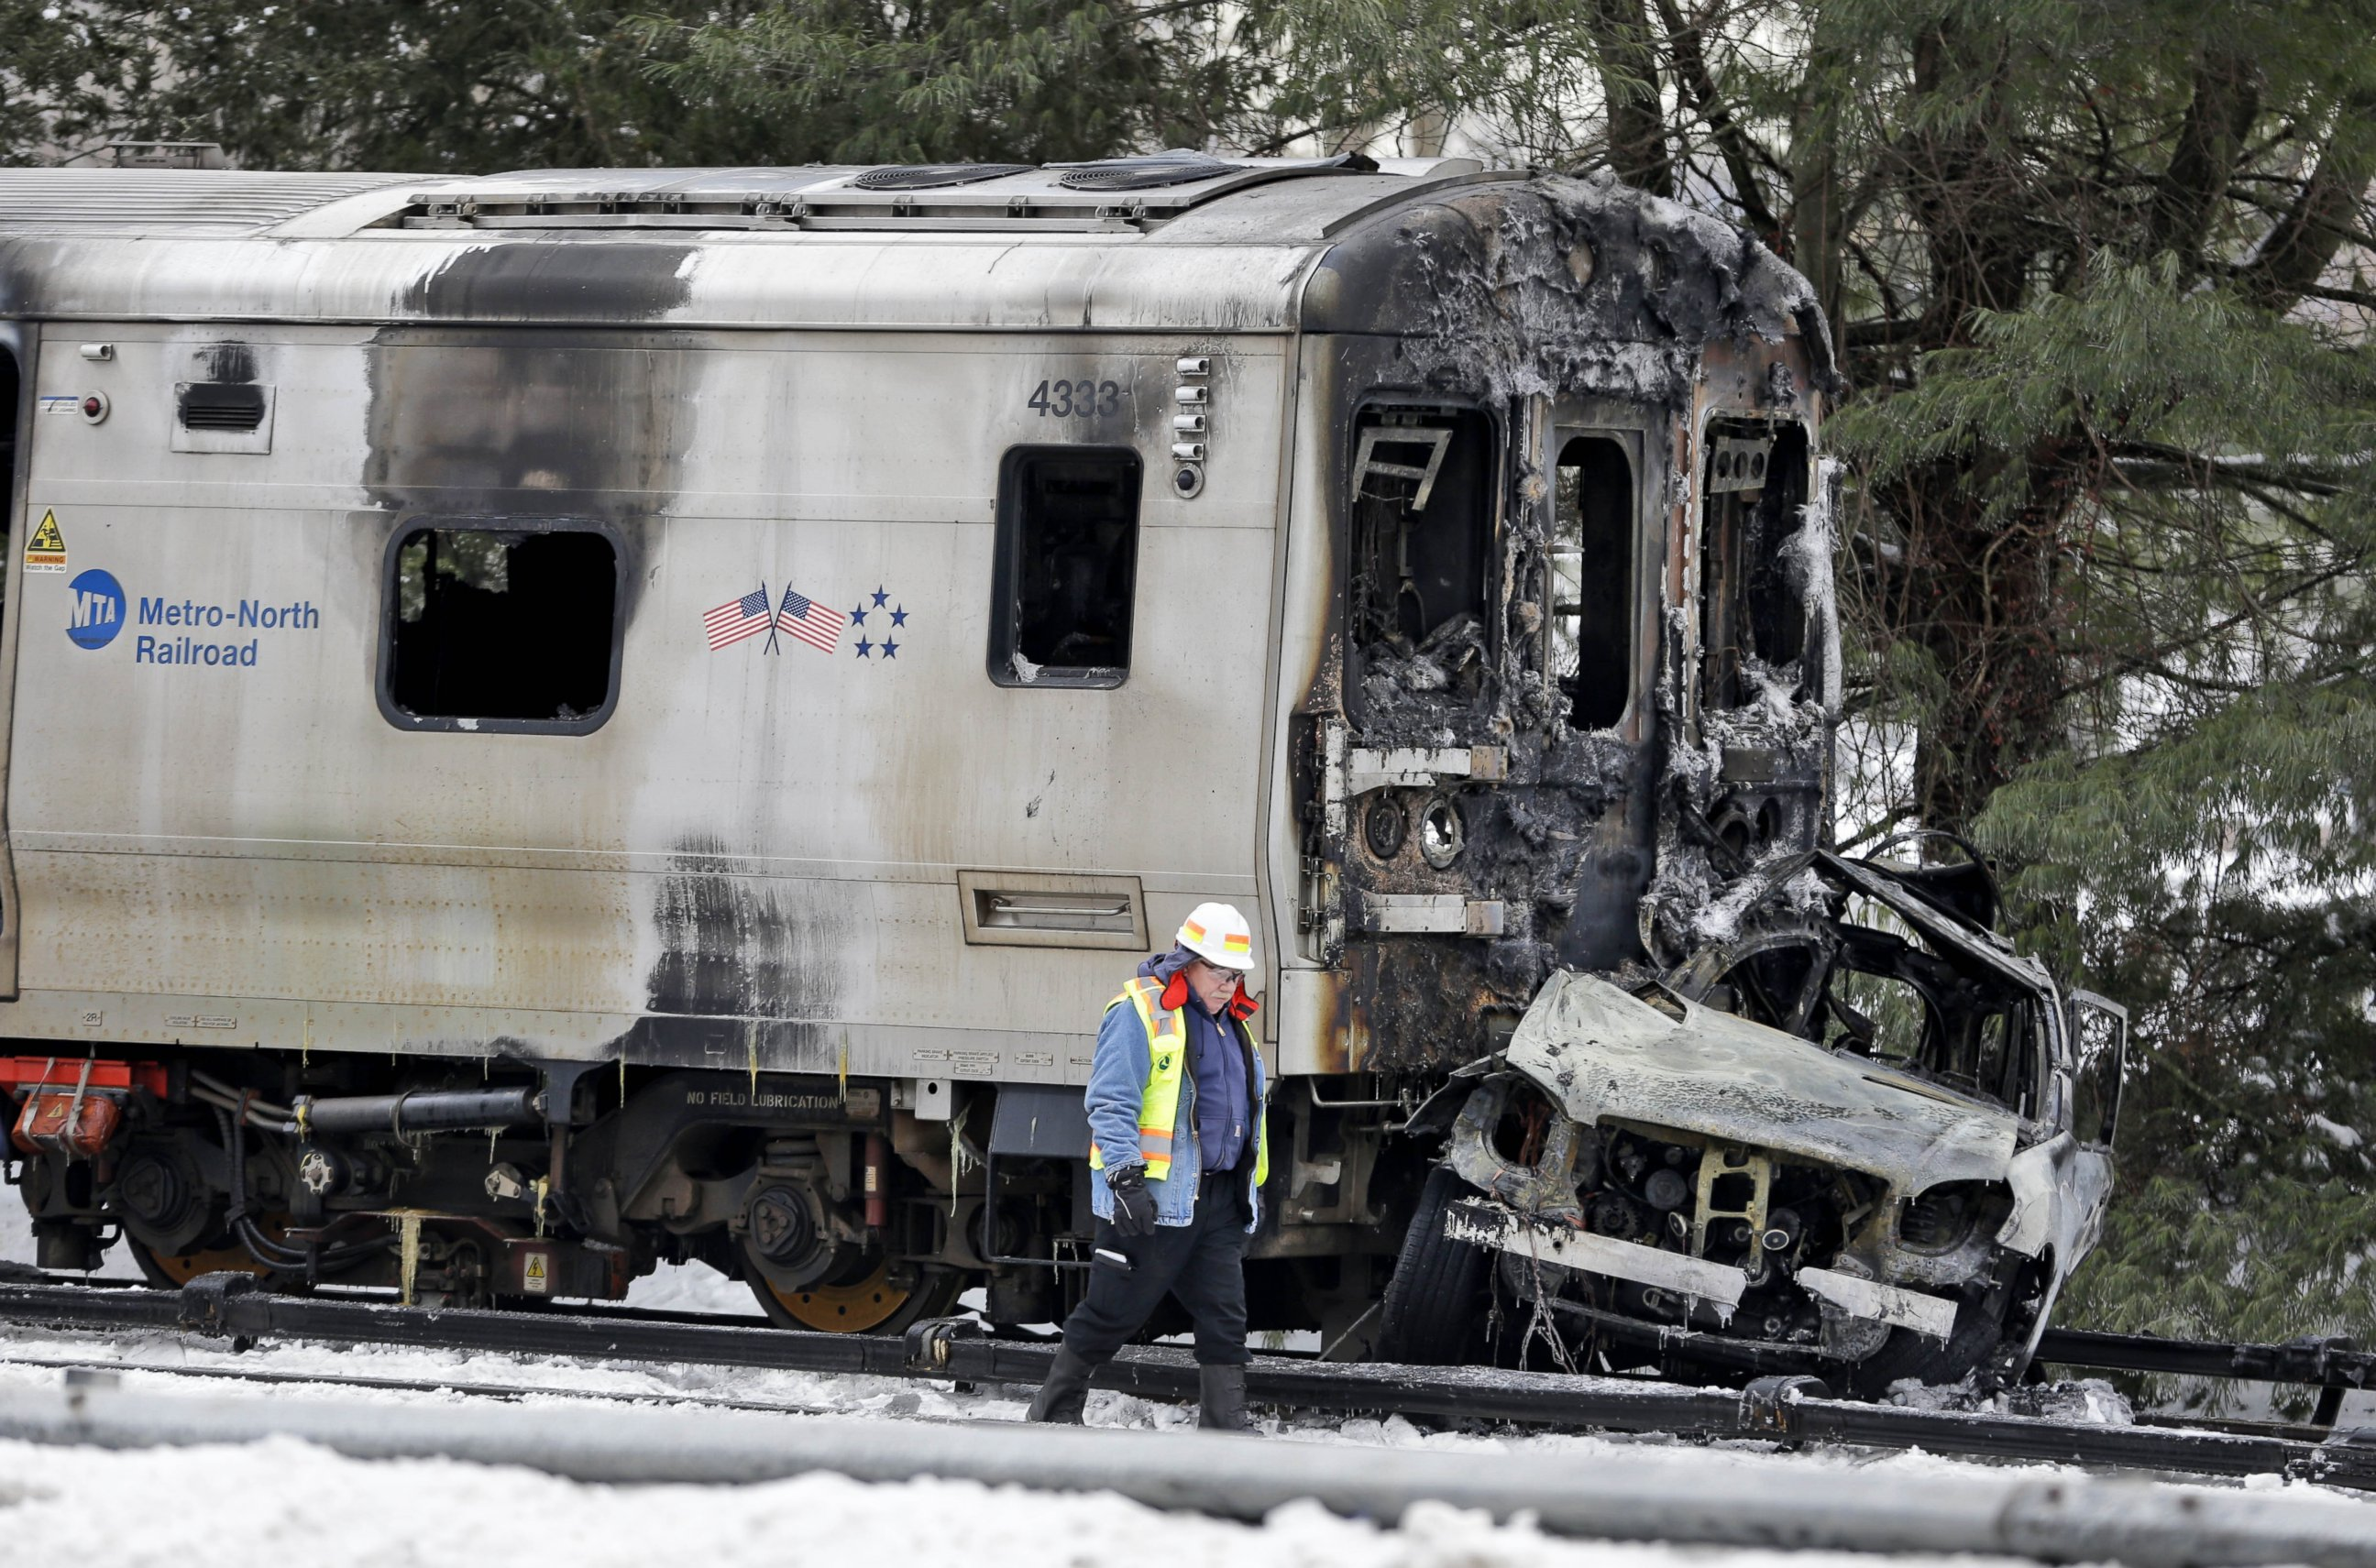 metronorth photos and images abc news